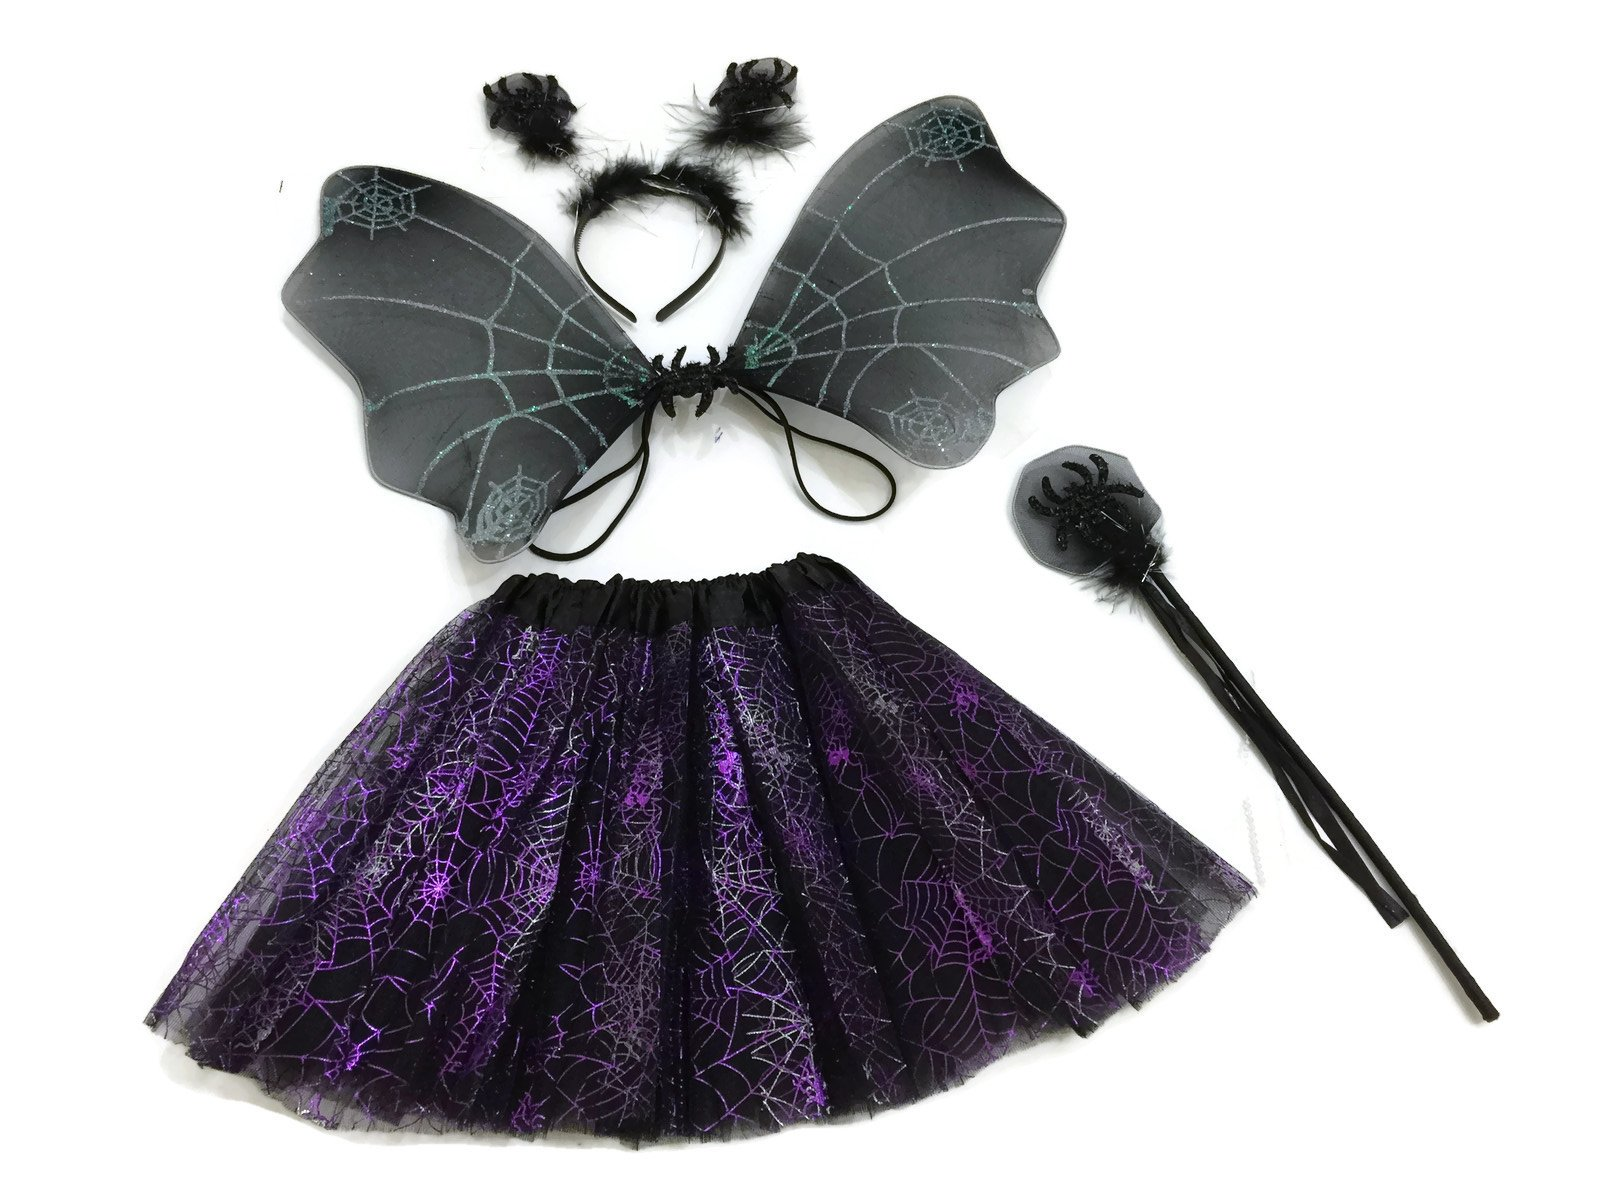 - 7175YSHjIIL - Rush Dance Halloween Black & Purple Spider Fairy- Wings, Wand, Headband & Tutu